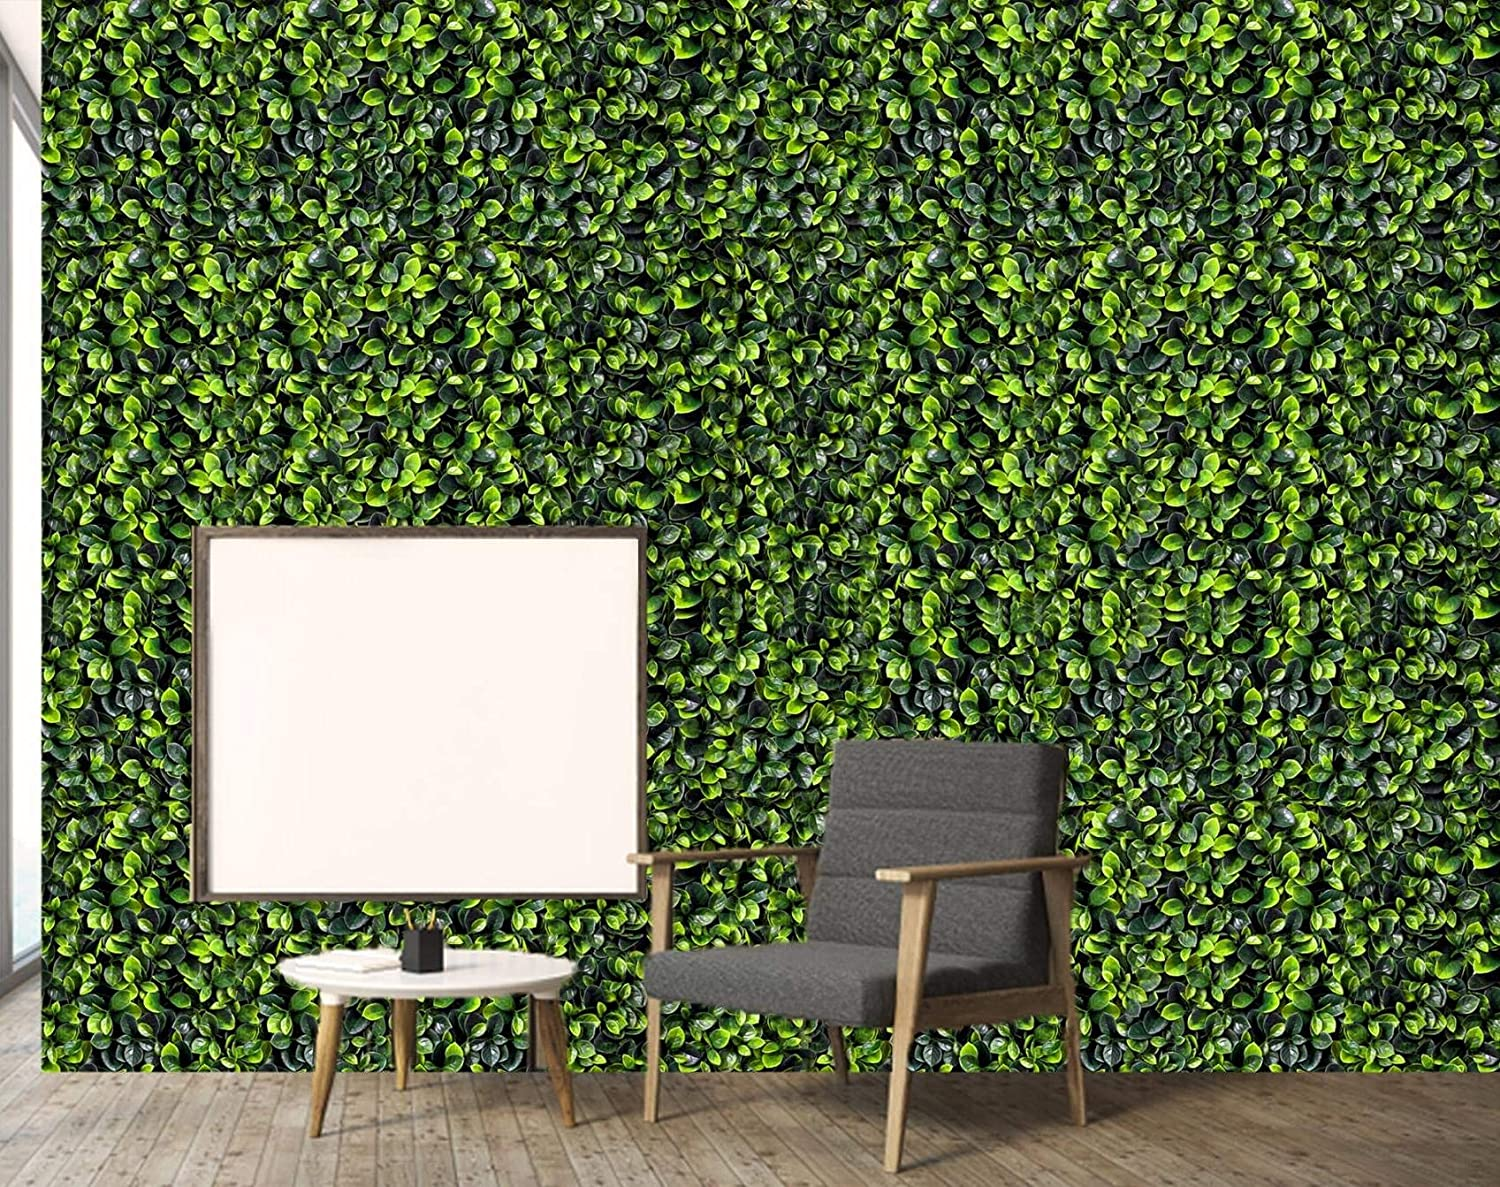 Konark Designer Wallpapers Artificial Grass Wall Panels And Grass Leaf Green 1 Piece Amazon In Home Kitchen